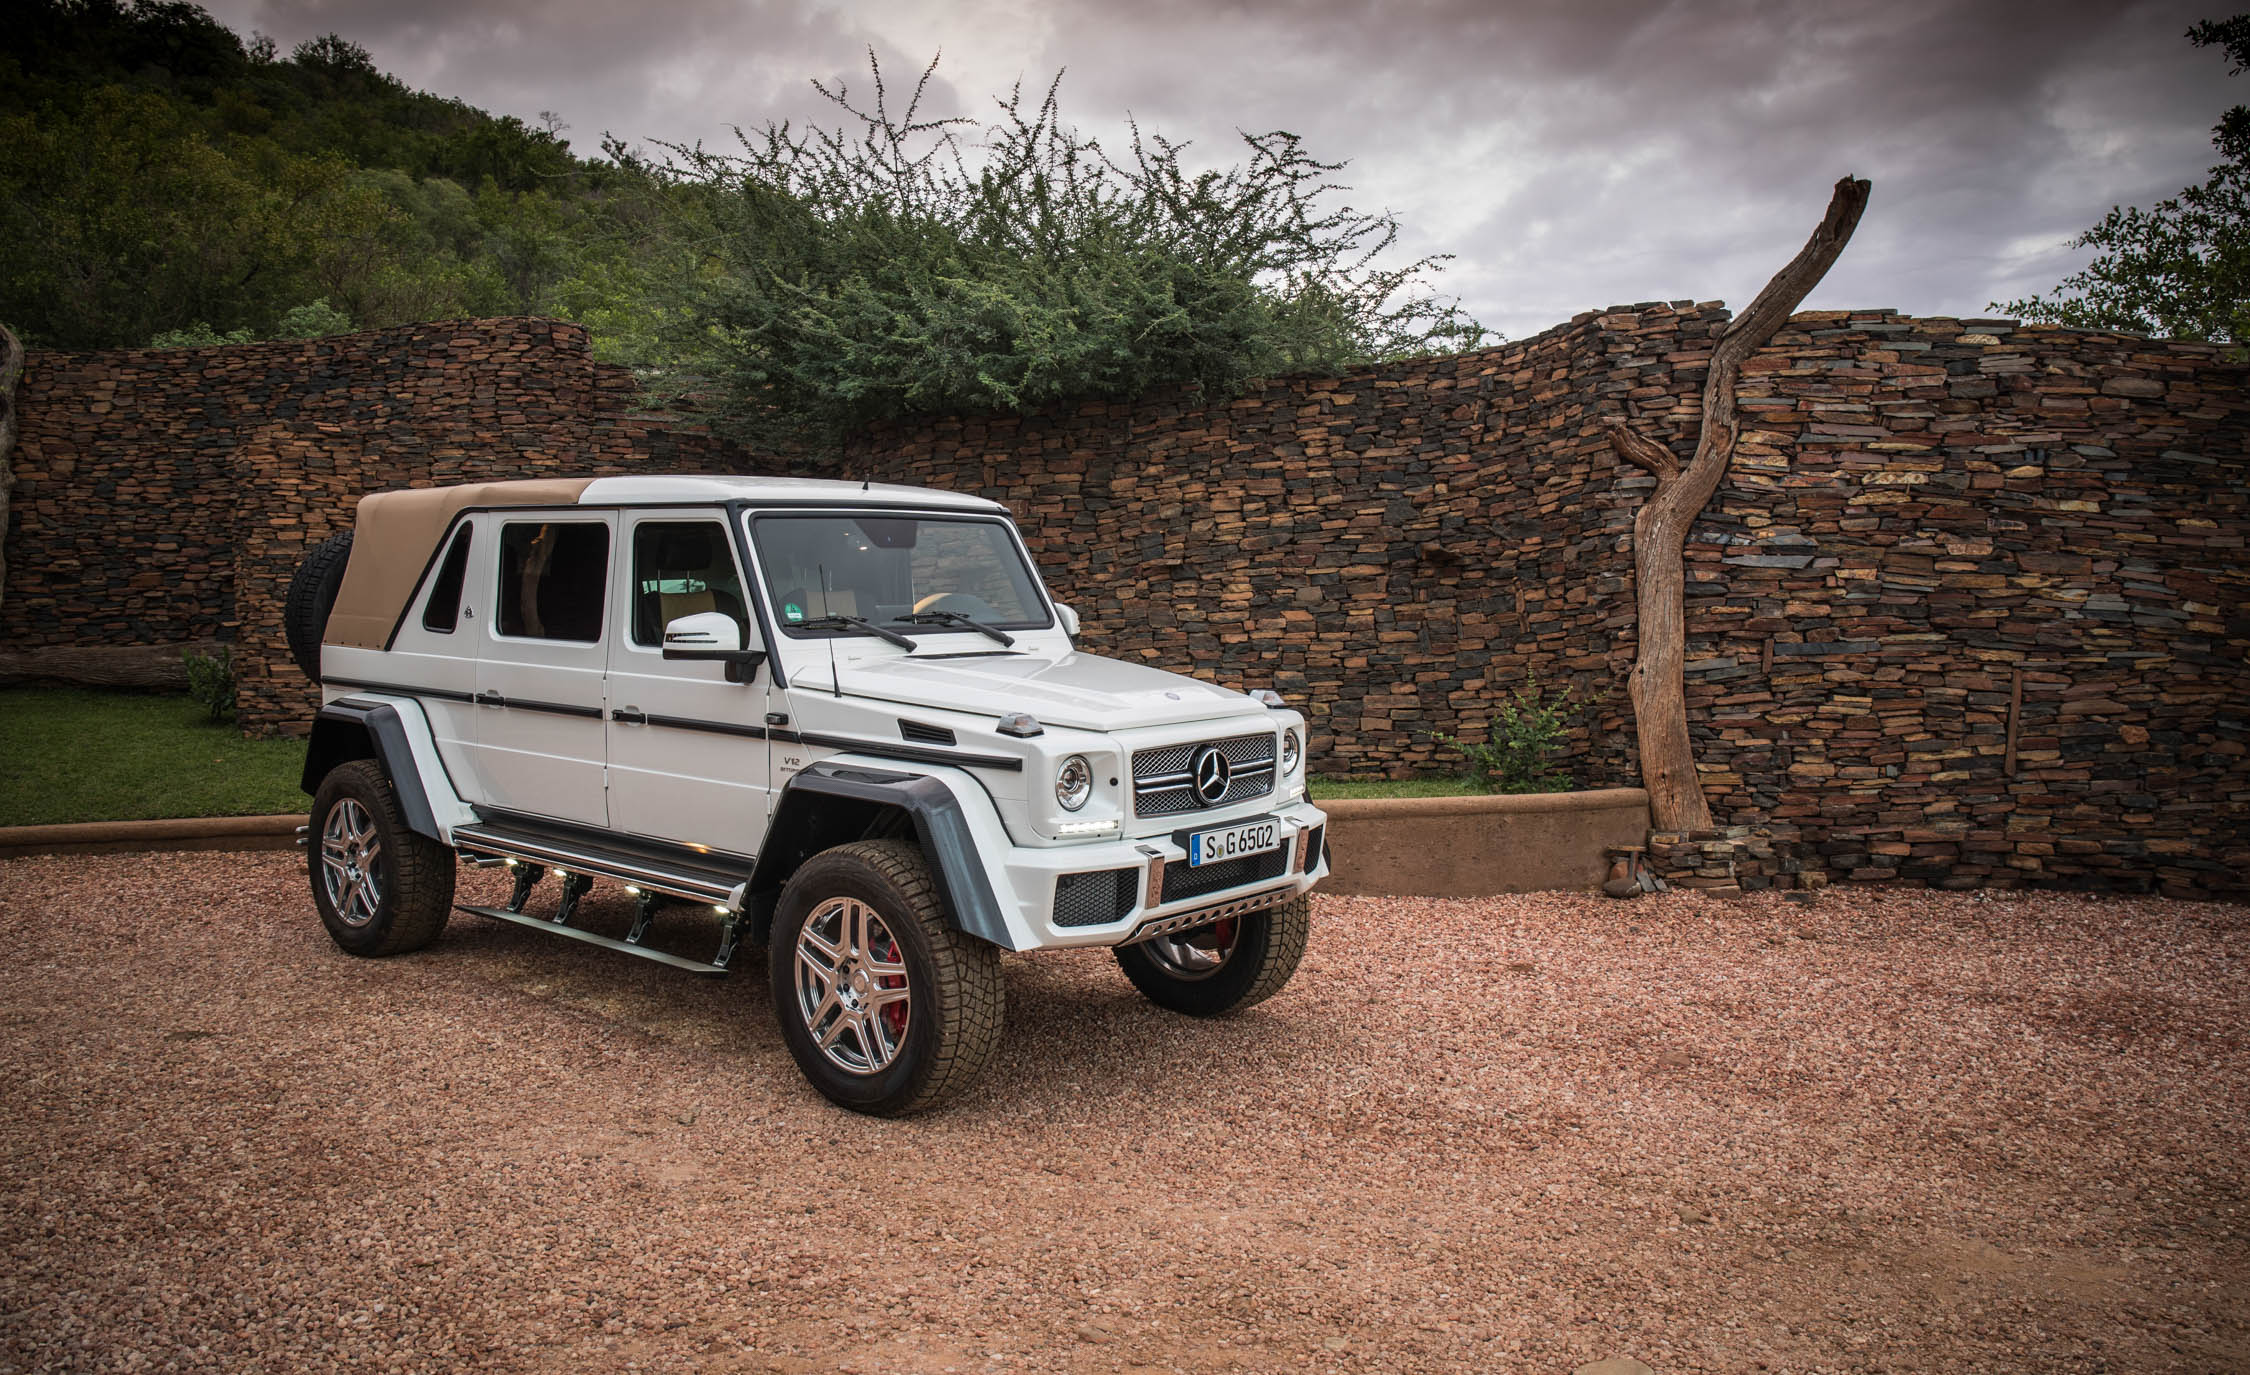 2018 Mercedes Maybach G650 Landaulet White Exterior Front And Side (Photo 9 of 52)